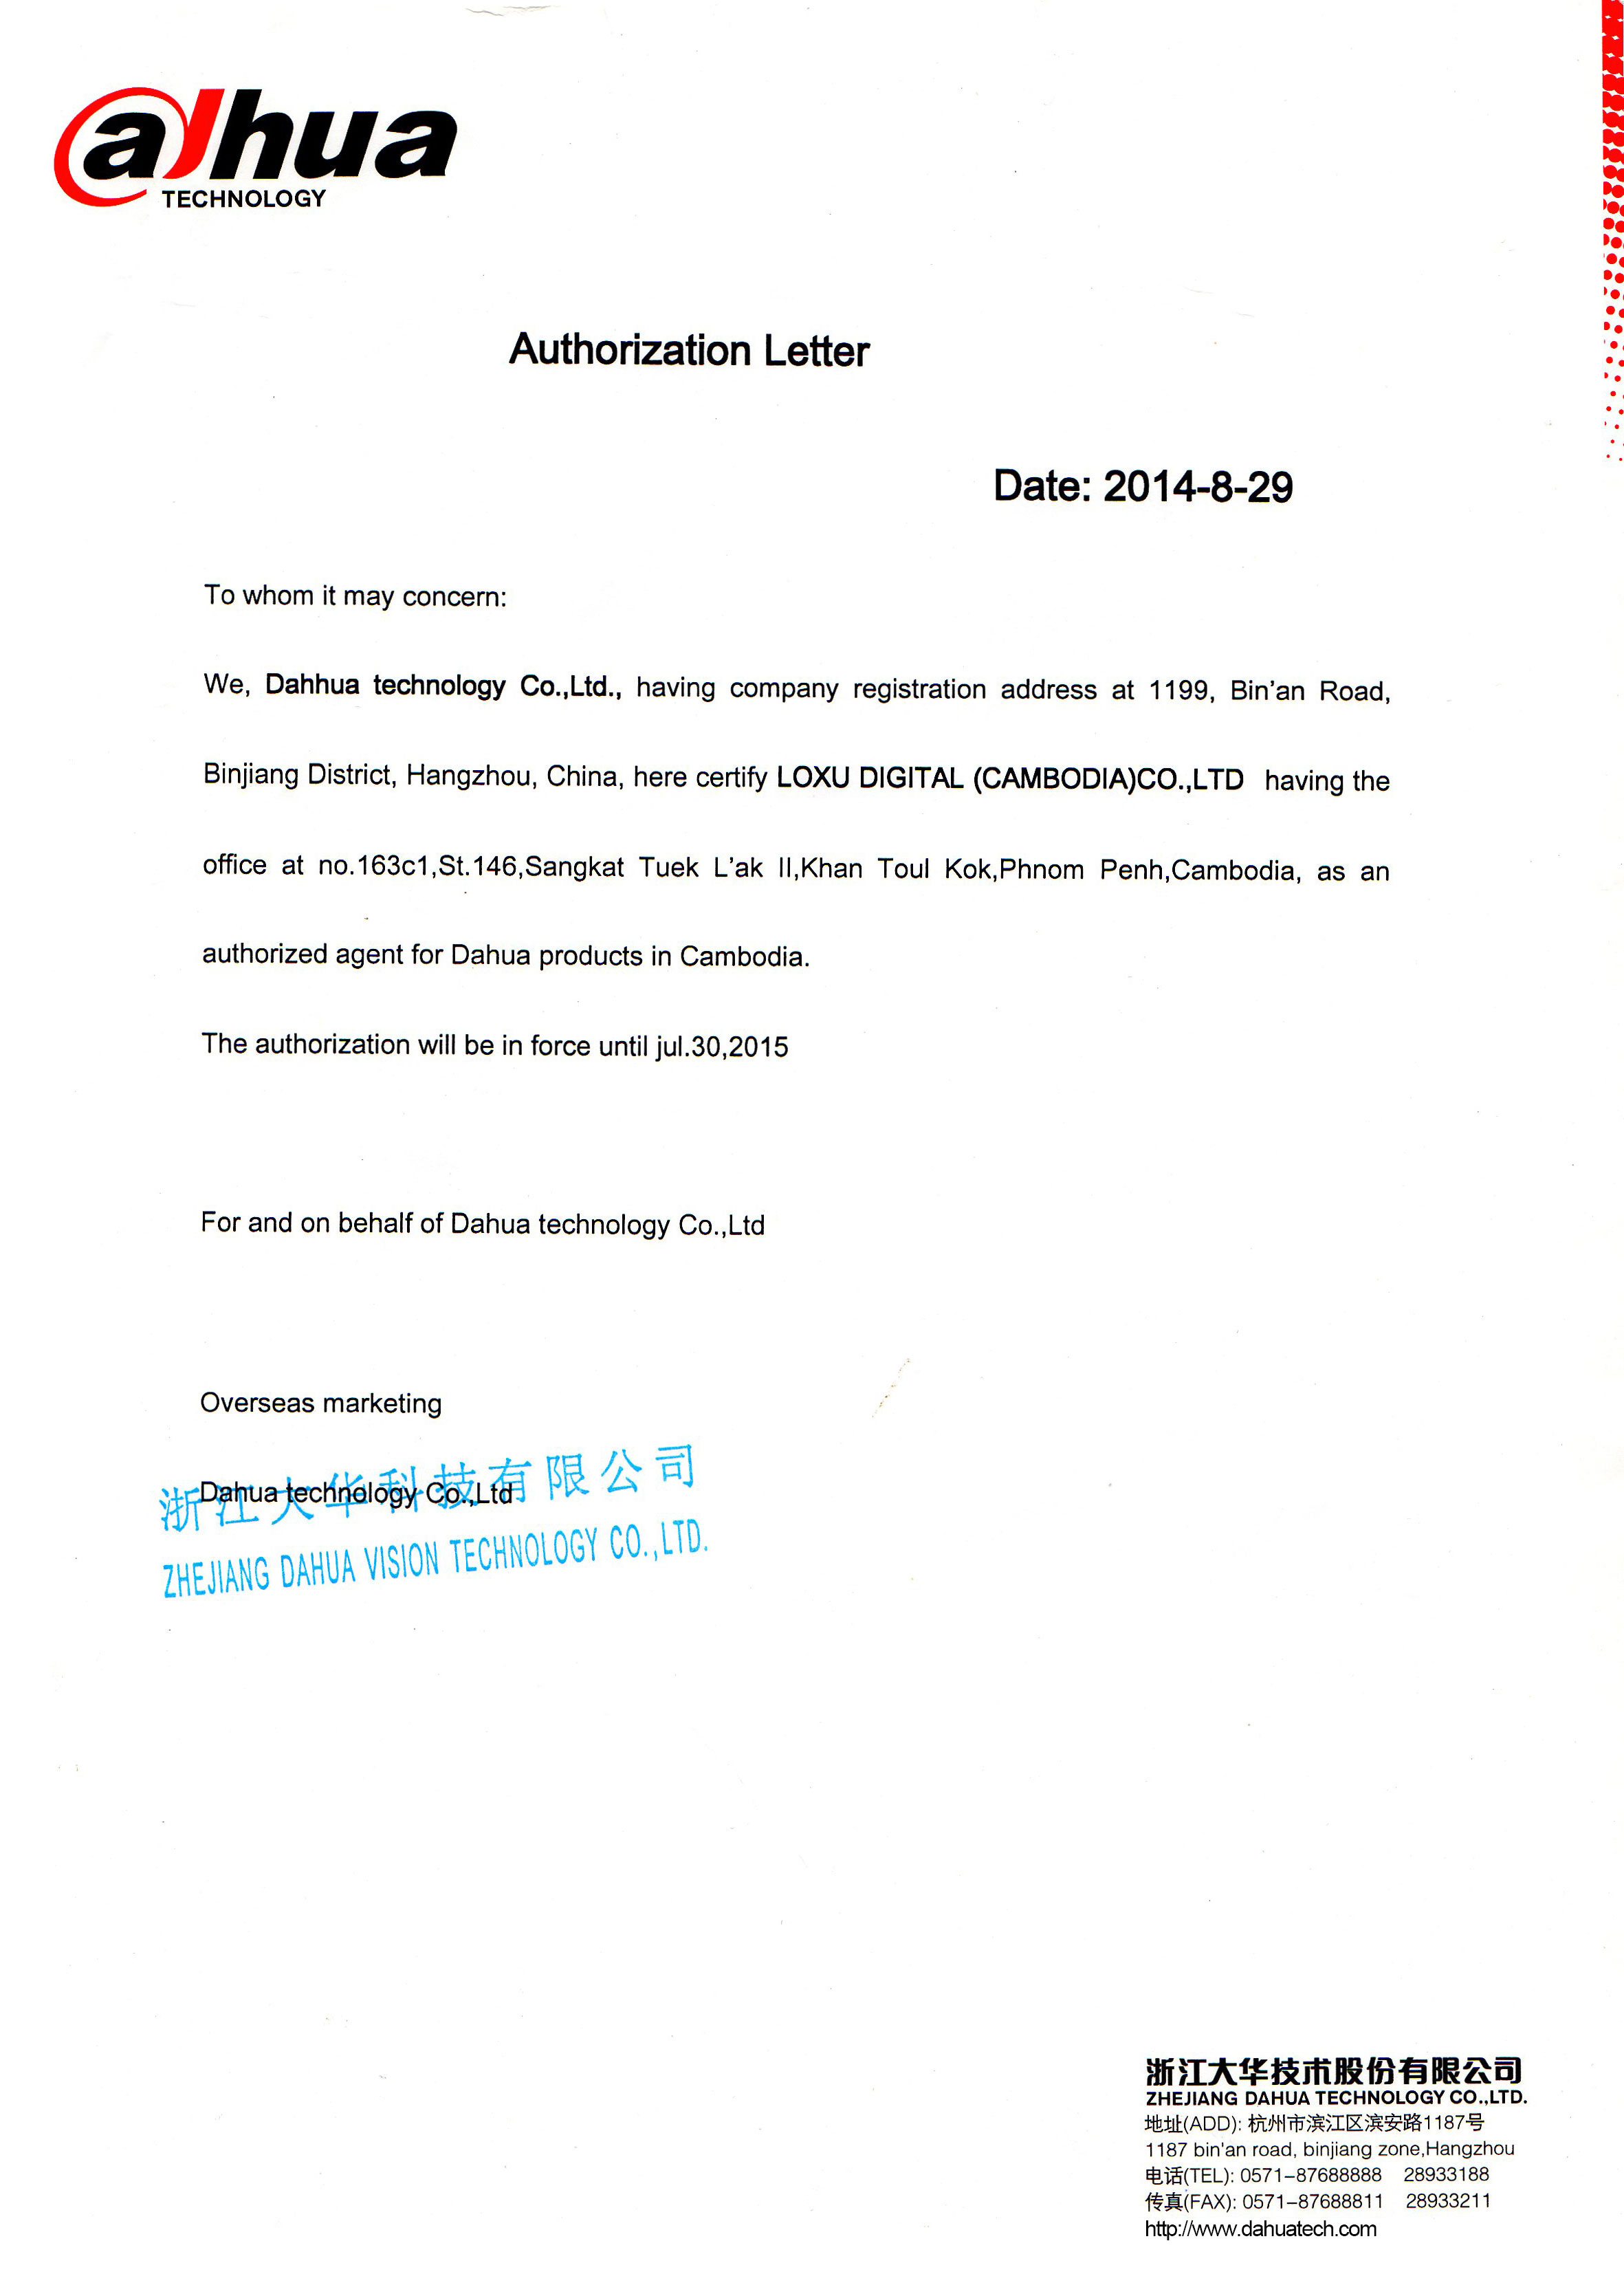 DAHUA TECHNOLOGY Authorization Letter – Authorization Letters